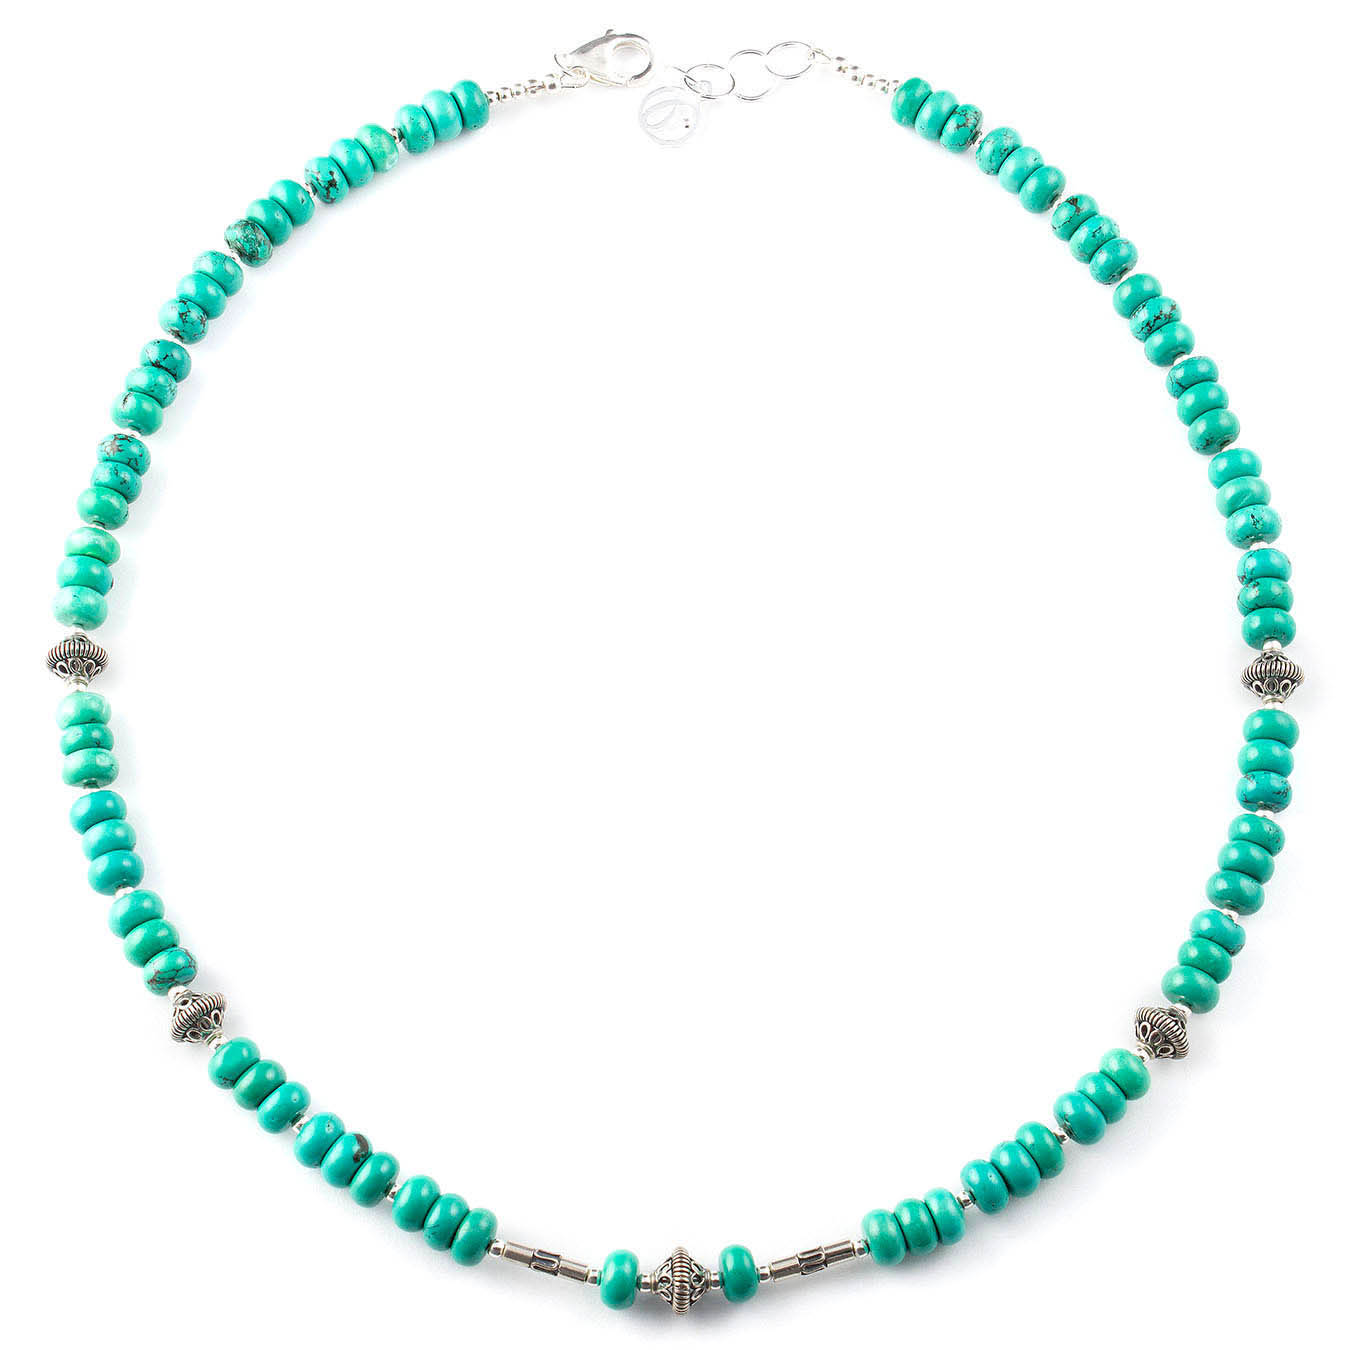 Handmade December birthstone jewelry with turquoise and bali silver